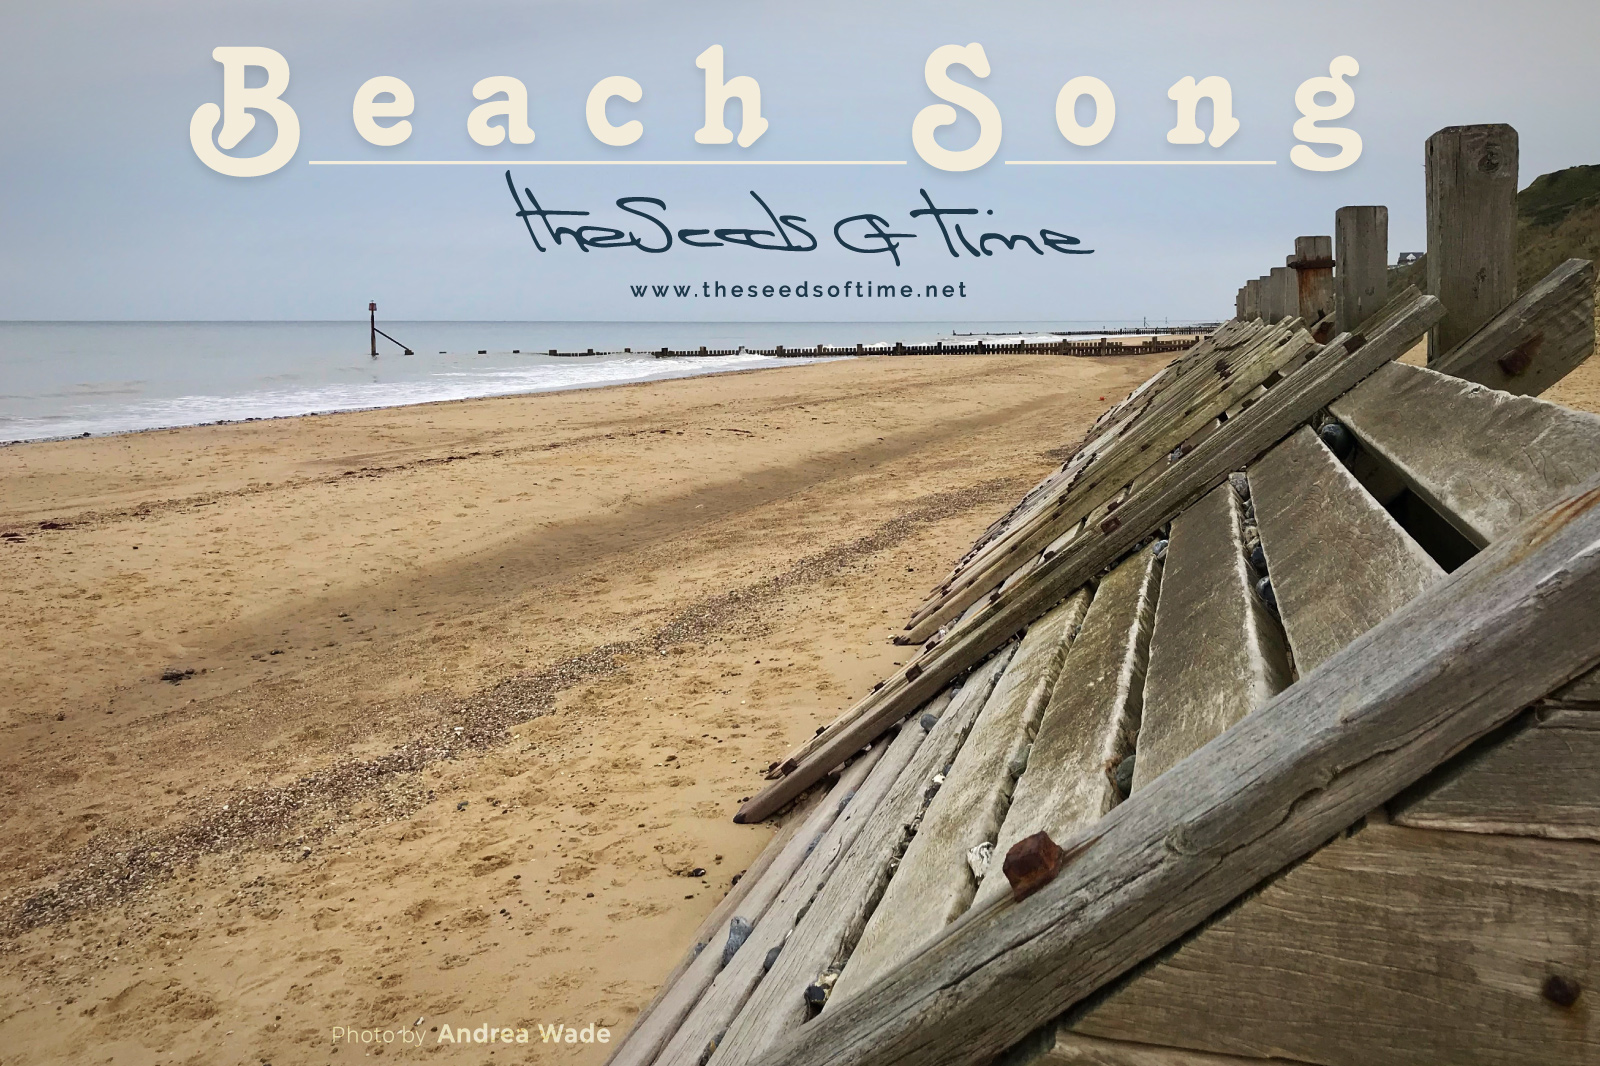 Photograph by Andrea Wade for song 'Beach Song, Pt. 1' from album titled 	Pumpkin Soup on which there is shown a sandy beach with wooden wave breakers